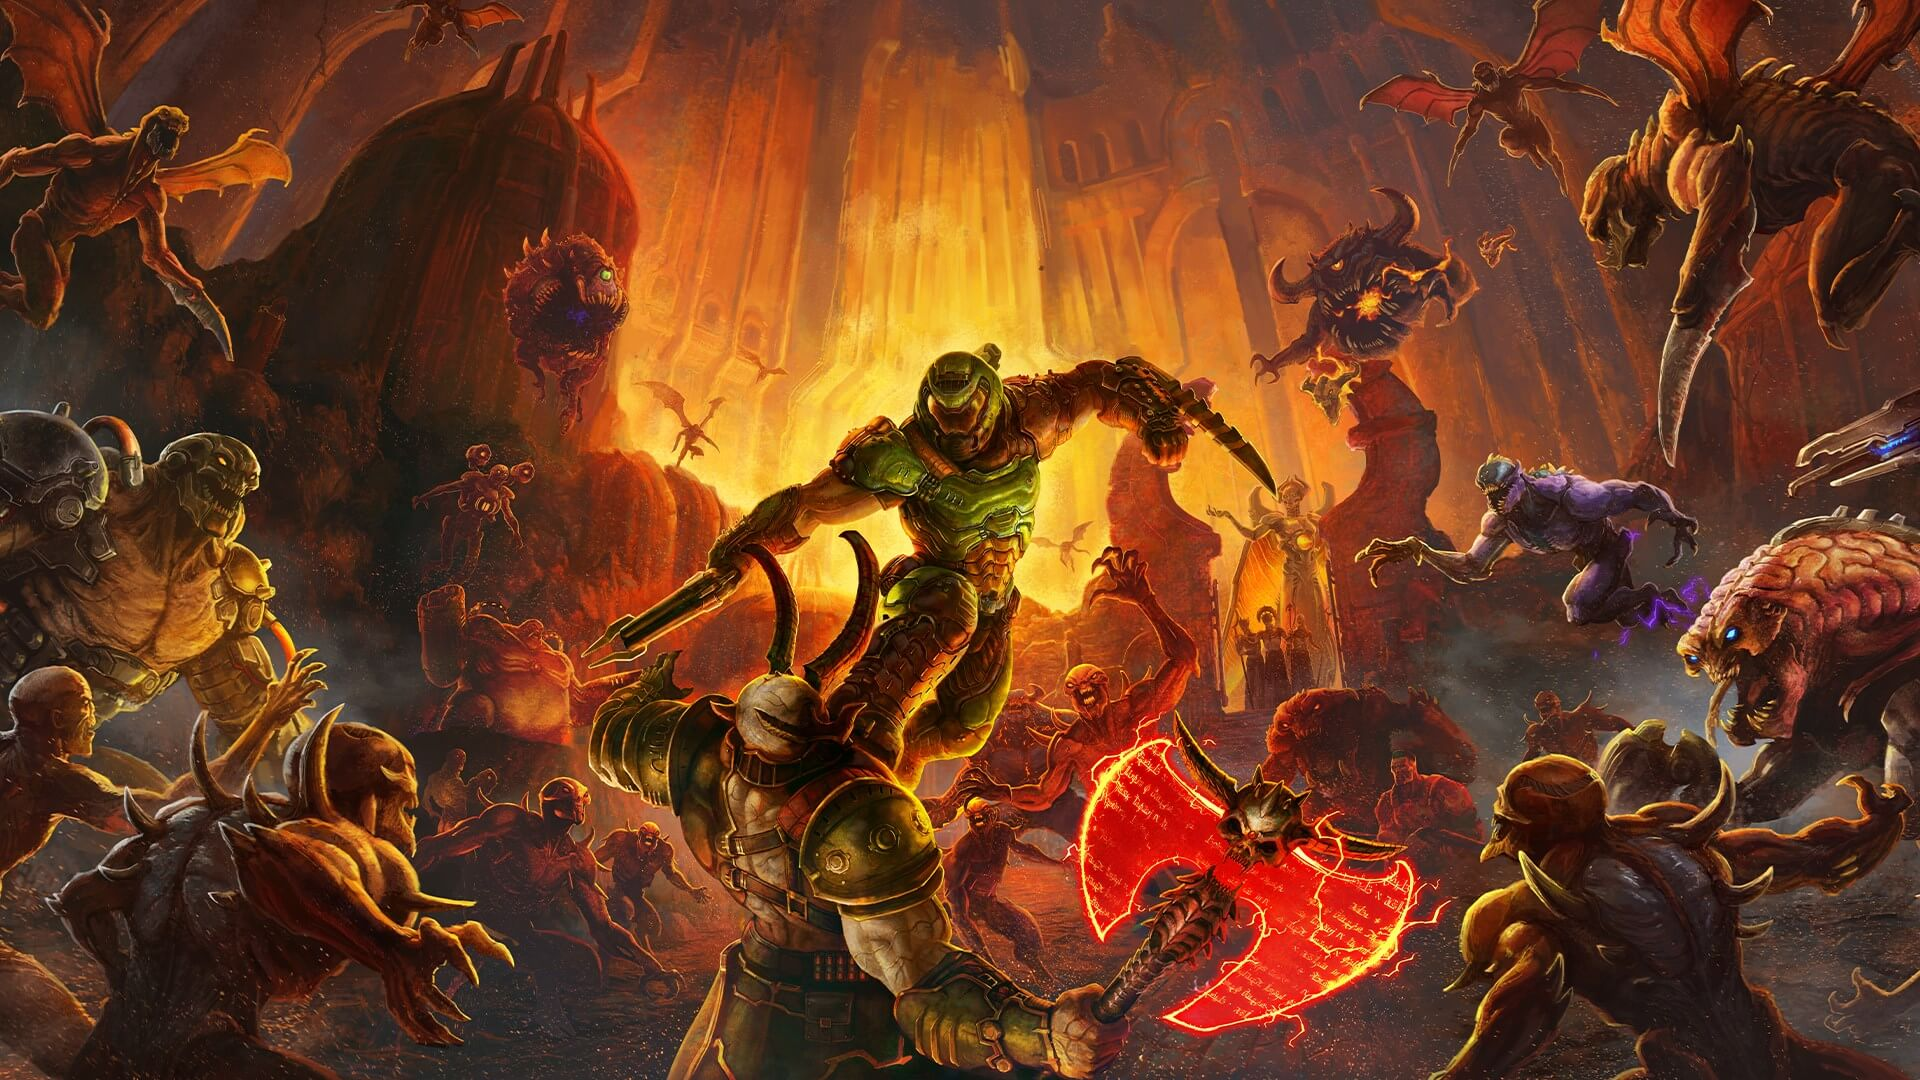 Doom Eternal Composer Mick Gordon Hints He's Done With The Series